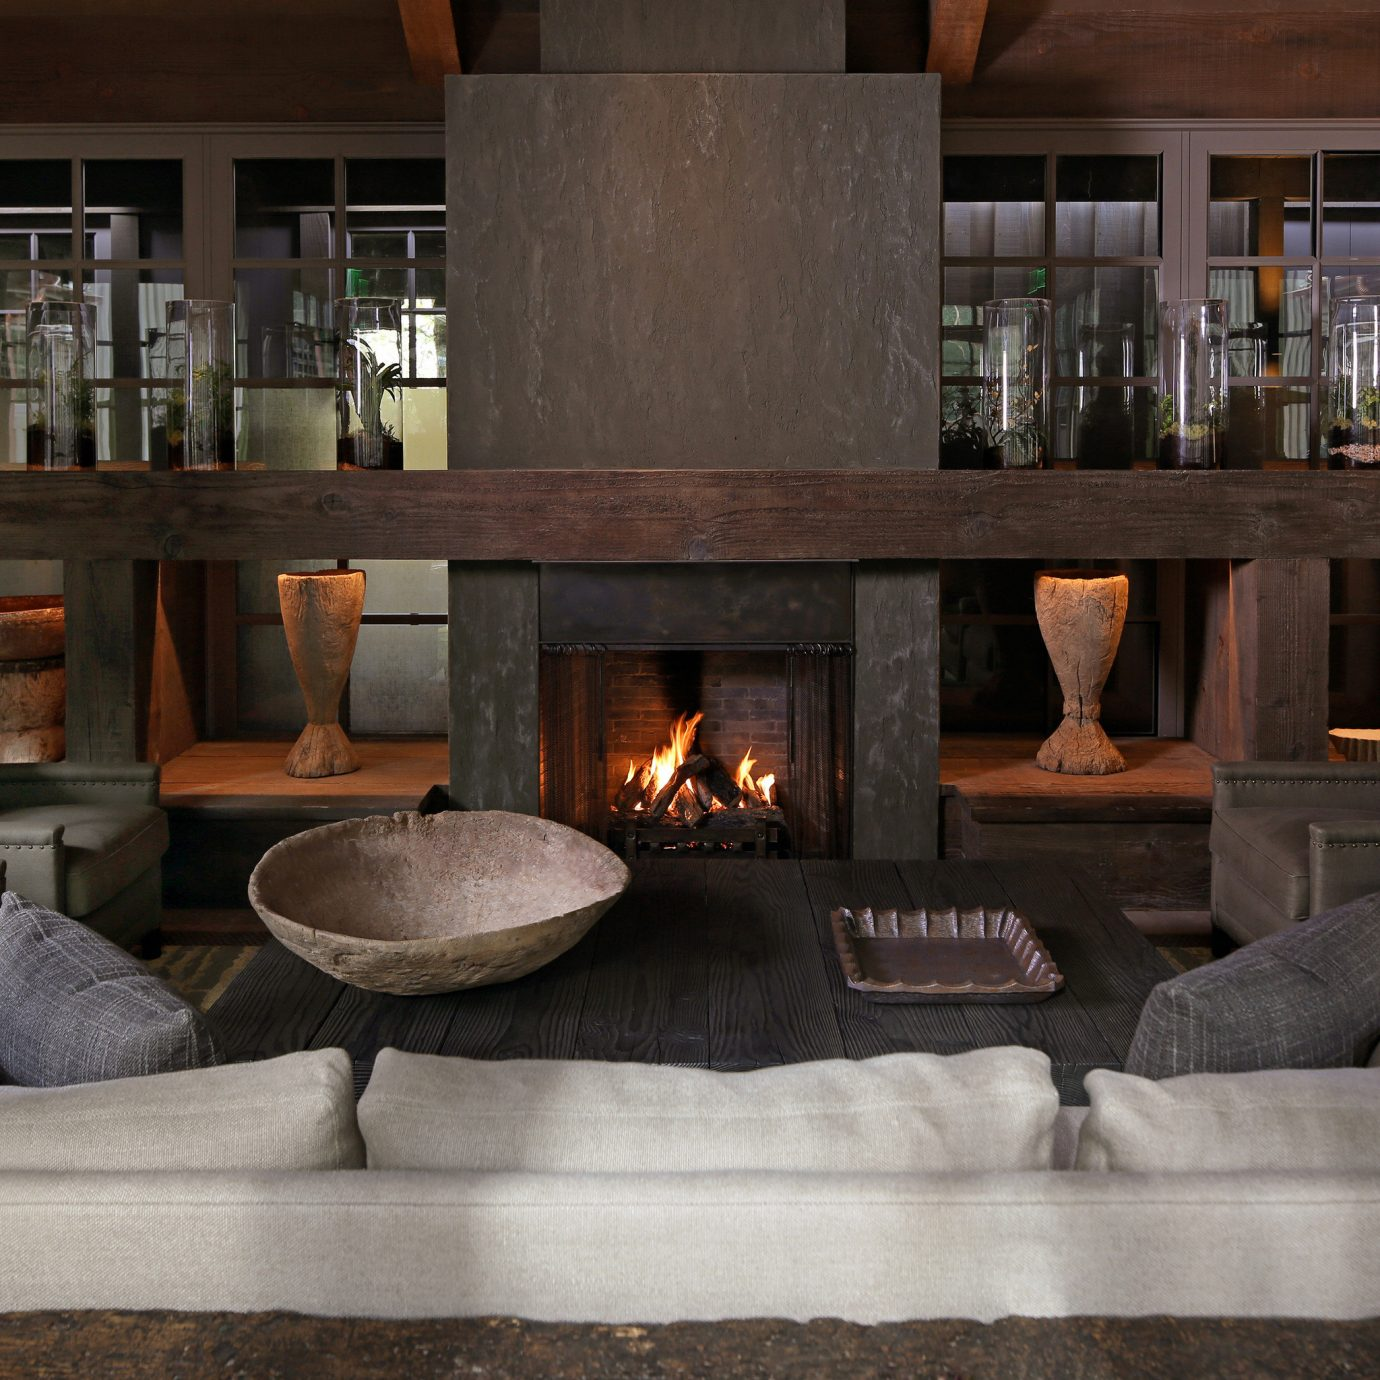 hearth Fireplace living room Lobby wood burning stove